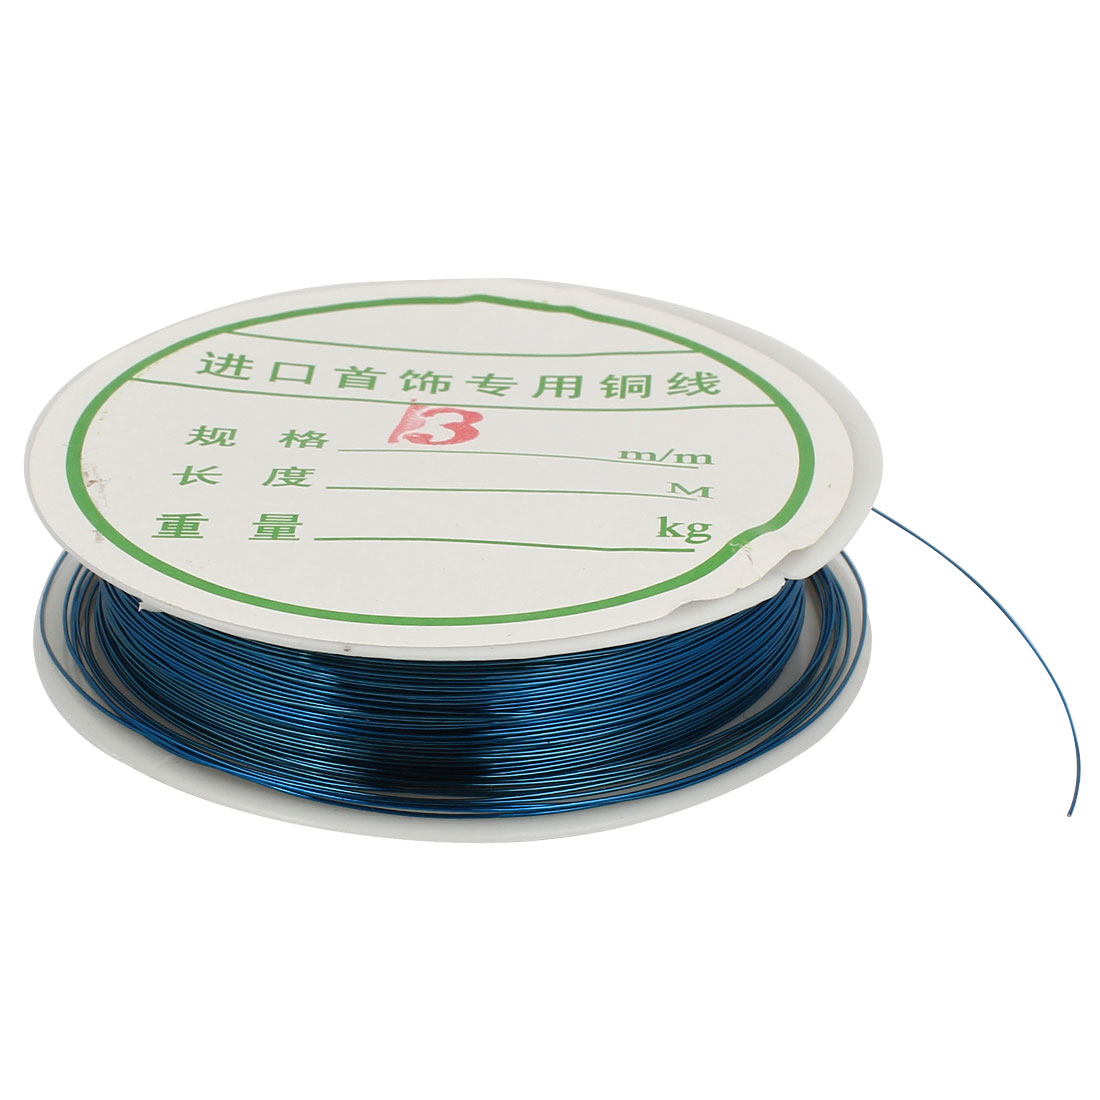 Unique Bargains Copper Tiger Tail Strand Beading Wire Bead Wrapping 0.4mm 26 Ga Teal Blue